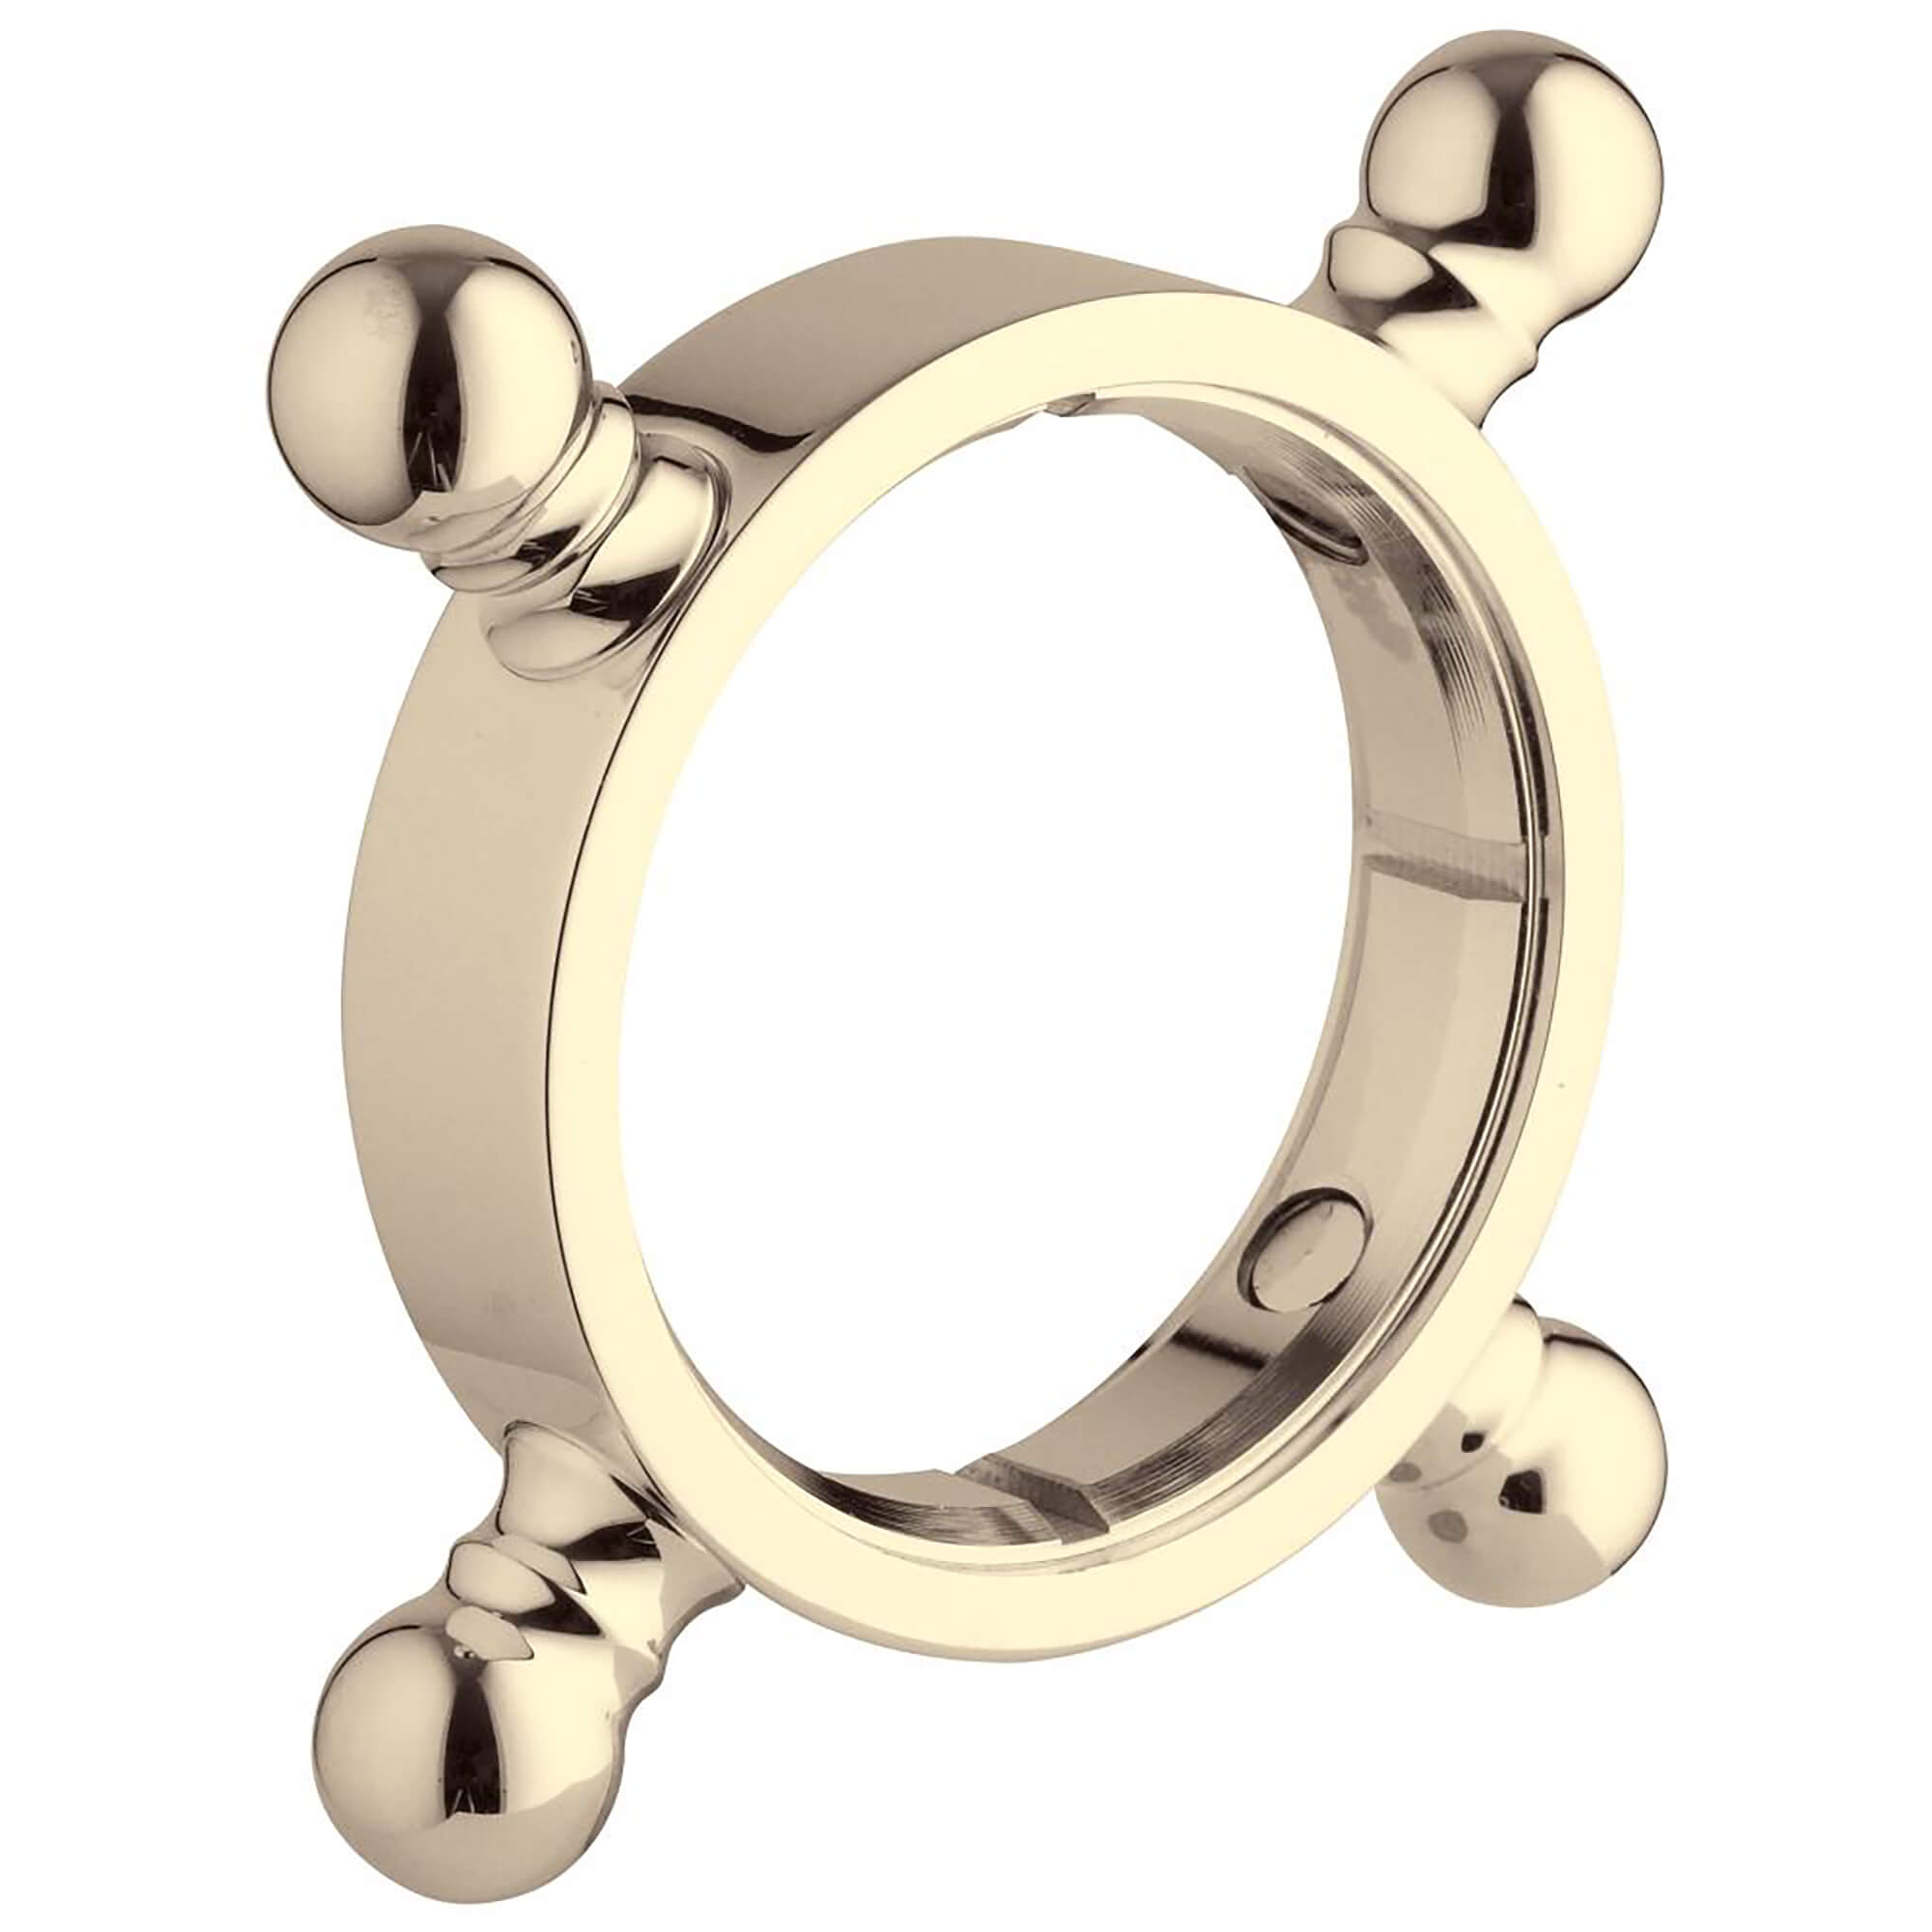 Decoration cross handle ring GROHE POLISHED BRASS